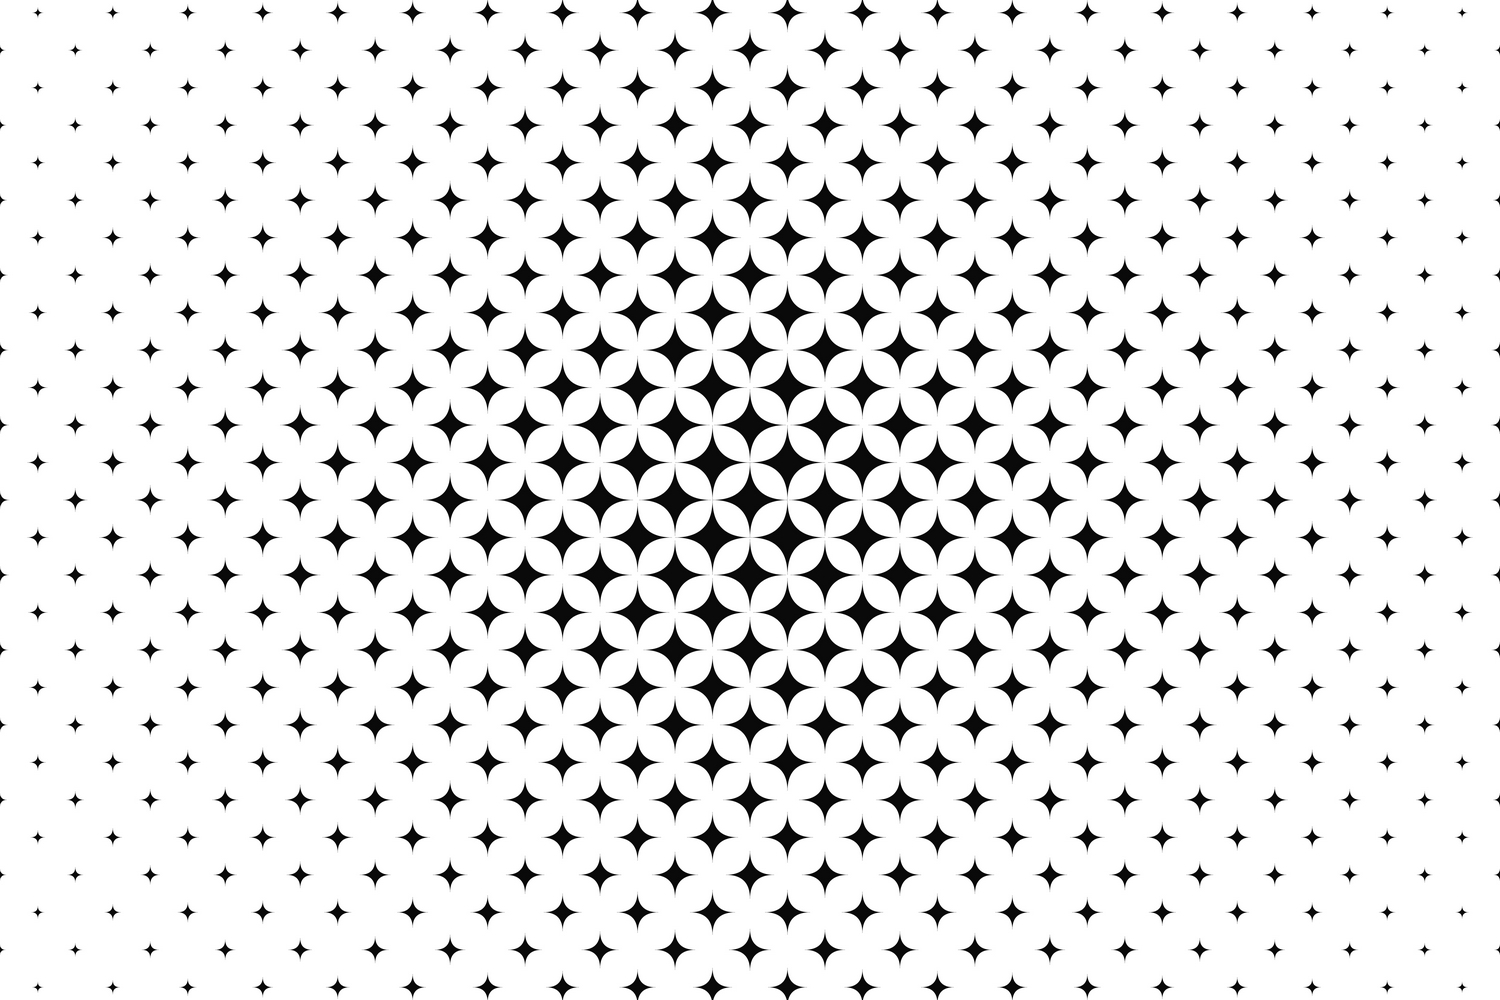 15 curved star patterns (EPS, AI, SVG, JPG 5000x5000) example image 2